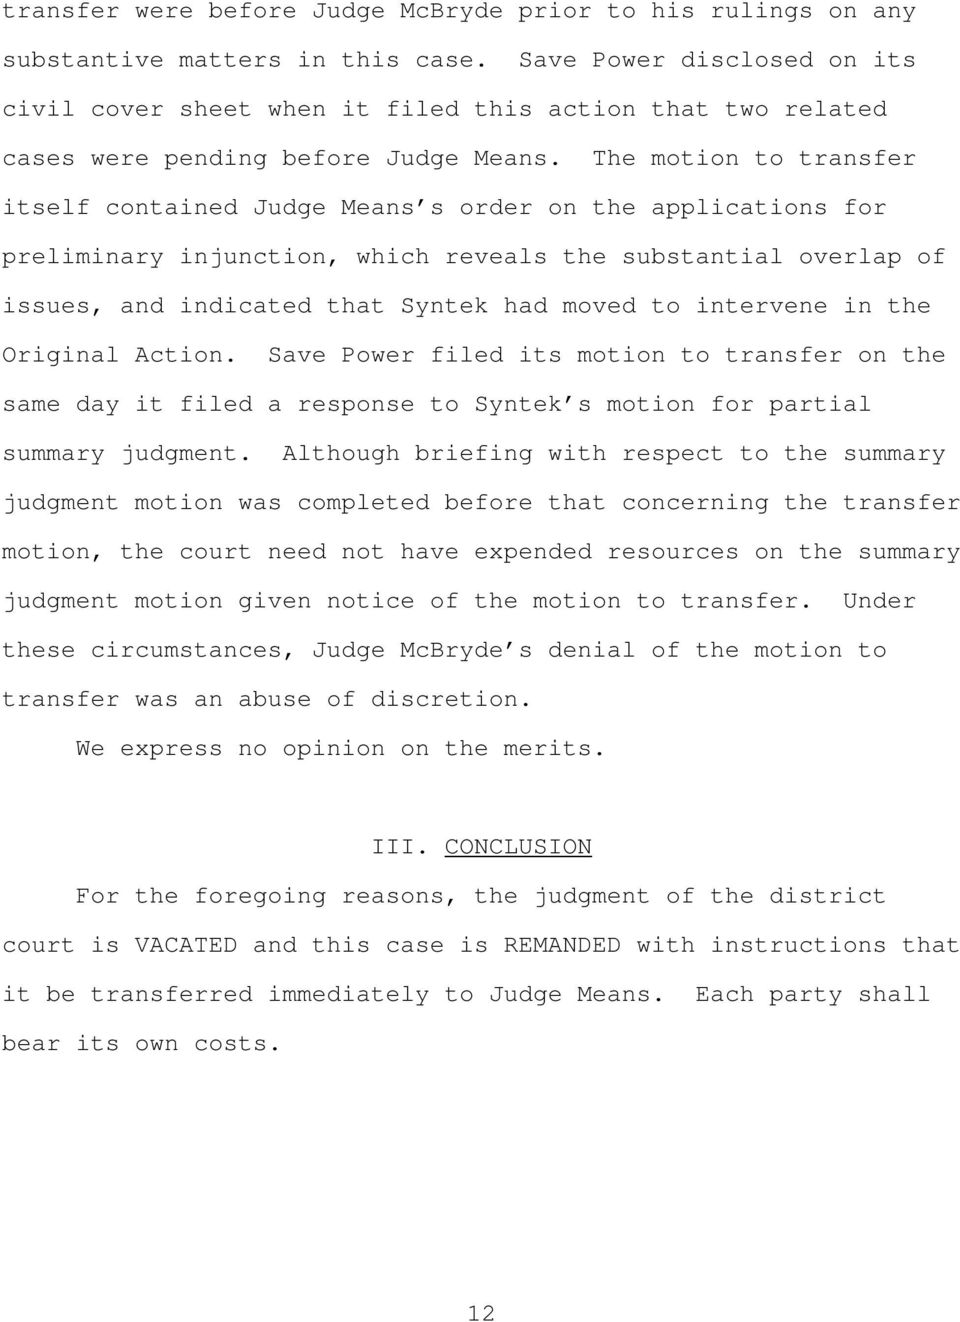 The motion to transfer itself contained Judge Means s order on the applications for preliminary injunction, which reveals the substantial overlap of issues, and indicated that Syntek had moved to